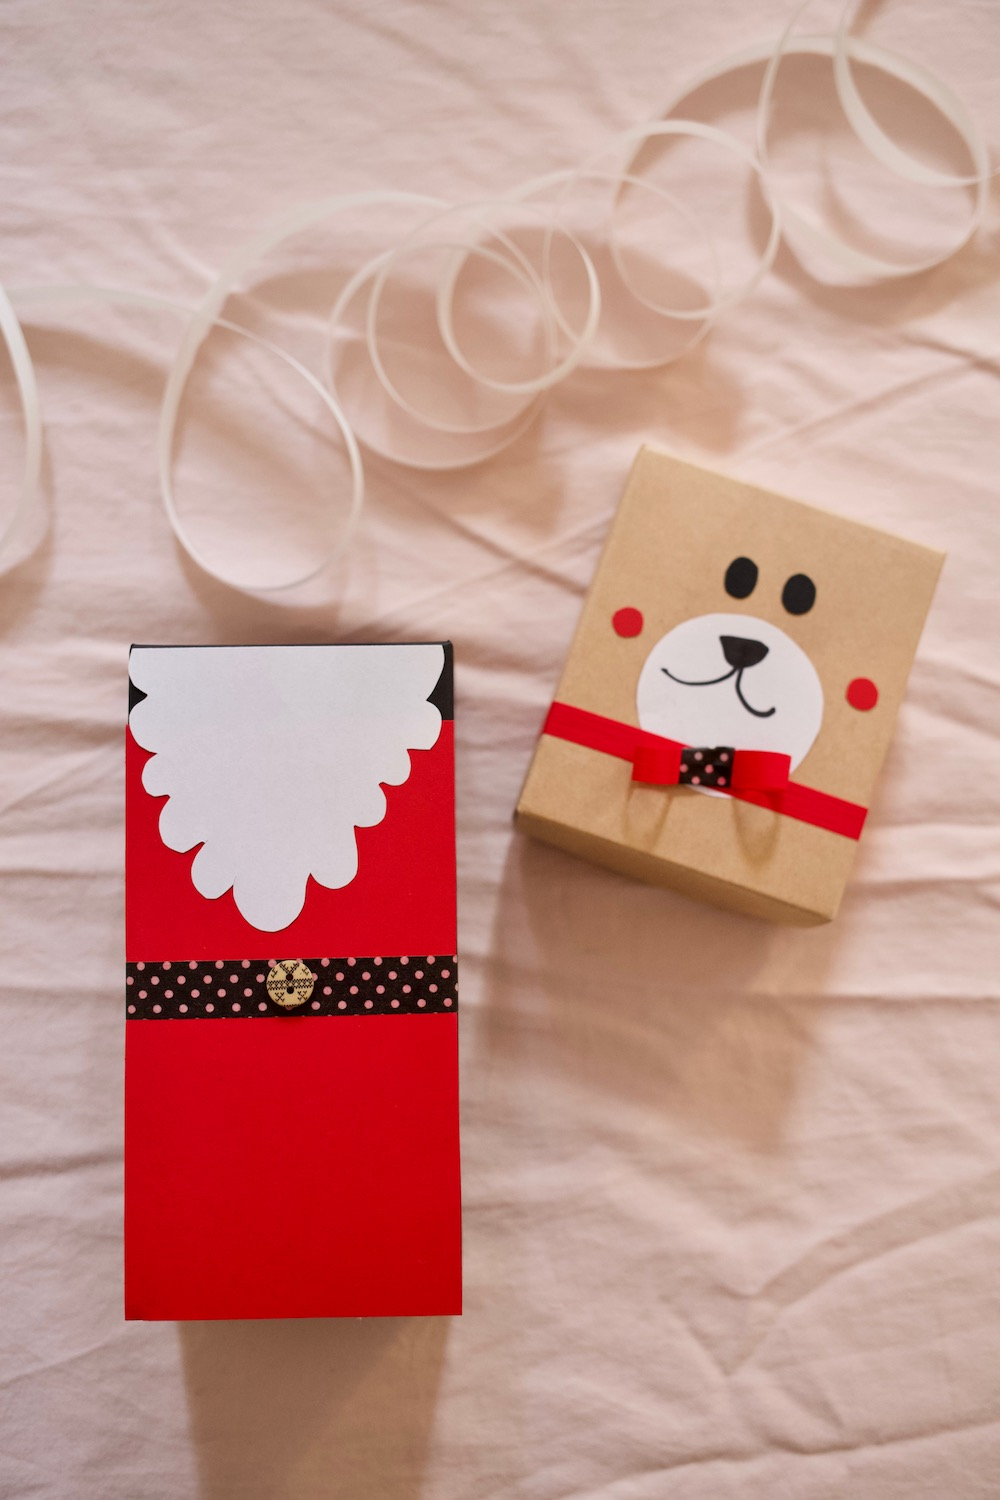 DIY gift wrapping ideas paketointi ideat